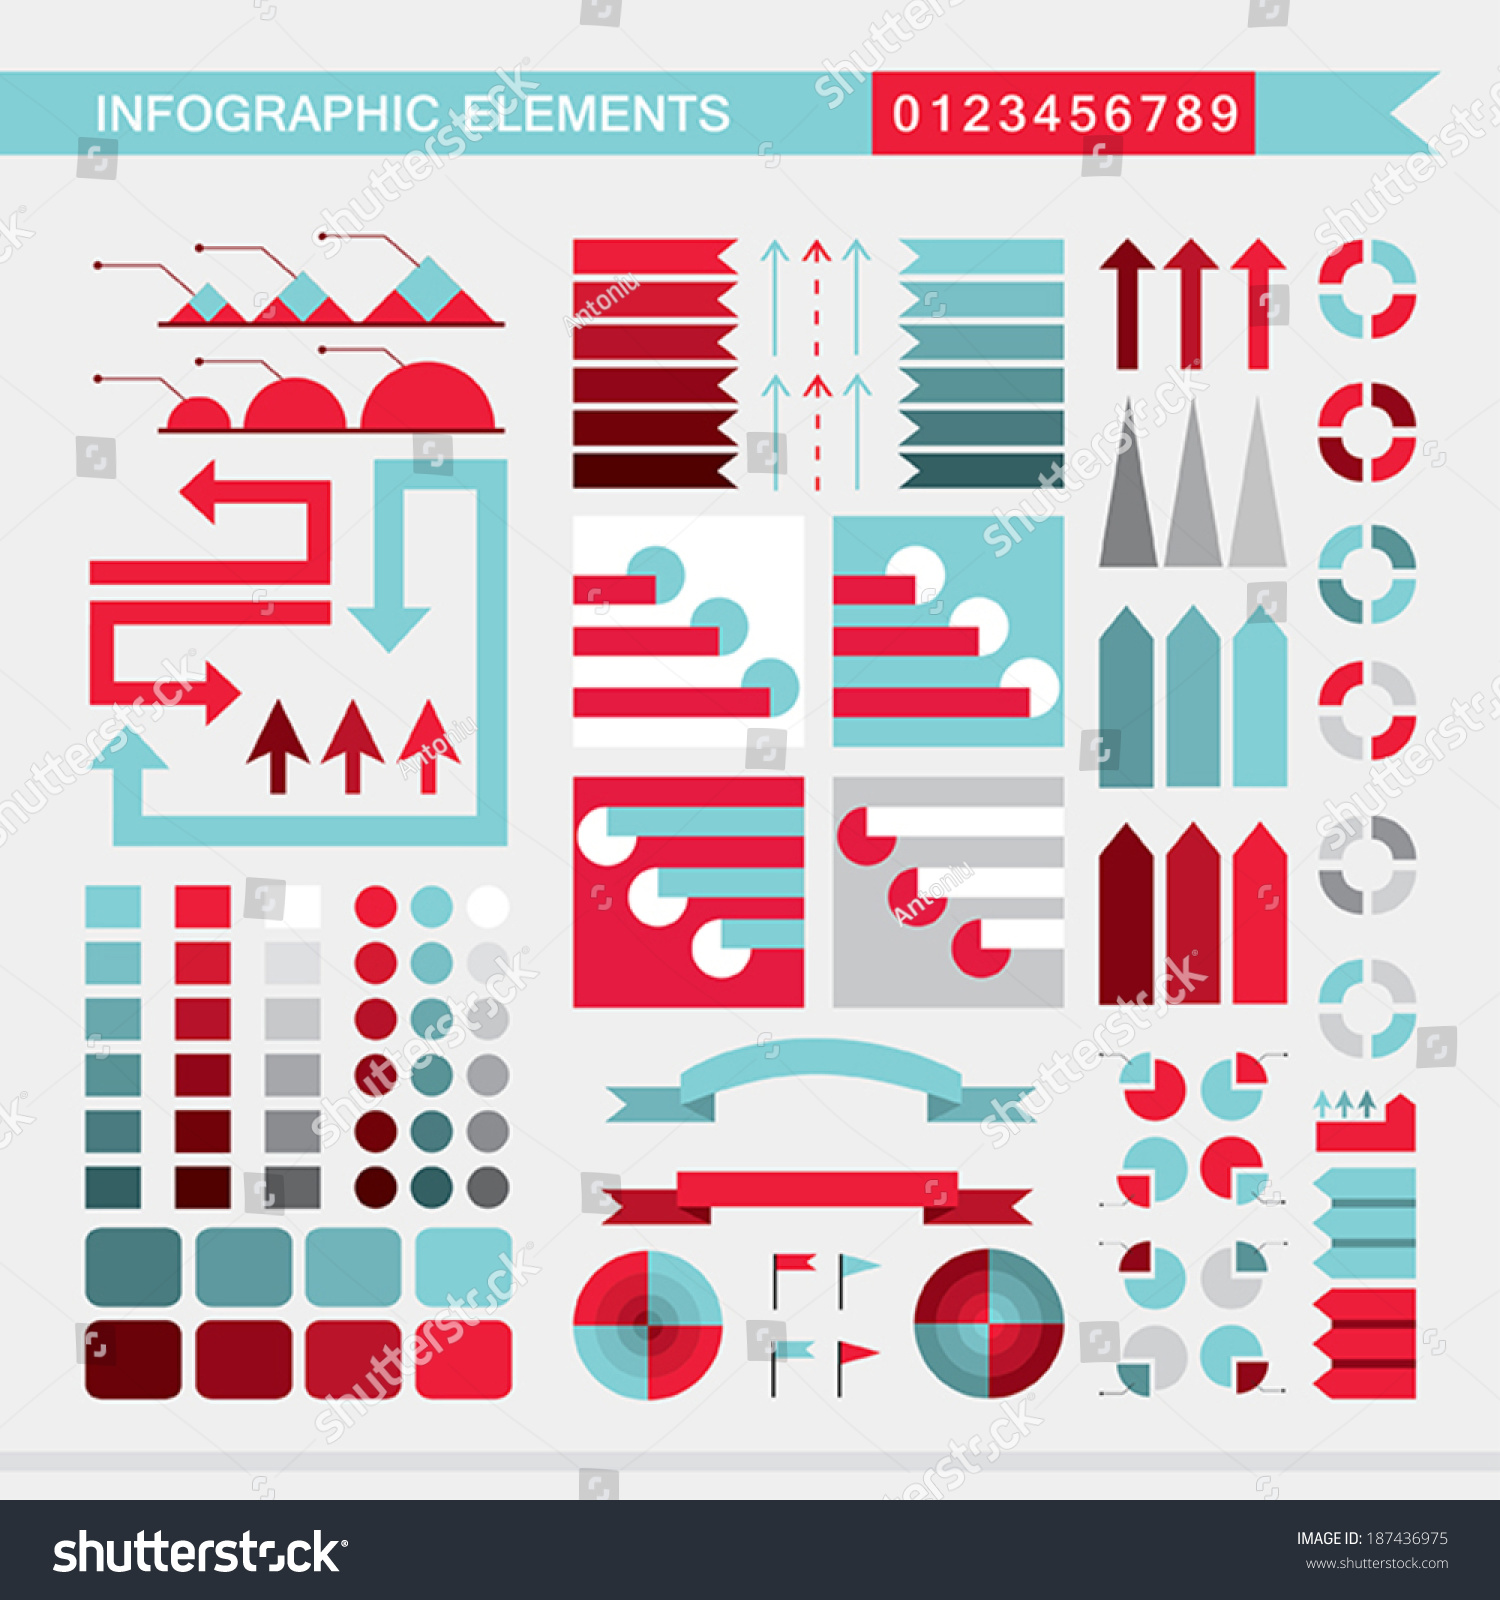 Set Infographic Elements Charts Graph Diagram Stock Vector. Abu Dhabi Luxury Hotels Website Shopping Cart. Seton Hall University Occupational Therapy. St Regis Mexico Punta Mita Kisd Online Grades. Tips For Investing Money Basement Water Leak. How To Apply For Scholarships For College Online. Demand Management Tool Dodge Neon Srt 4 Specs. Criminal Lawyer In Brooklyn Mr Seed Iko Nini. Zero Interest Balance Transfers